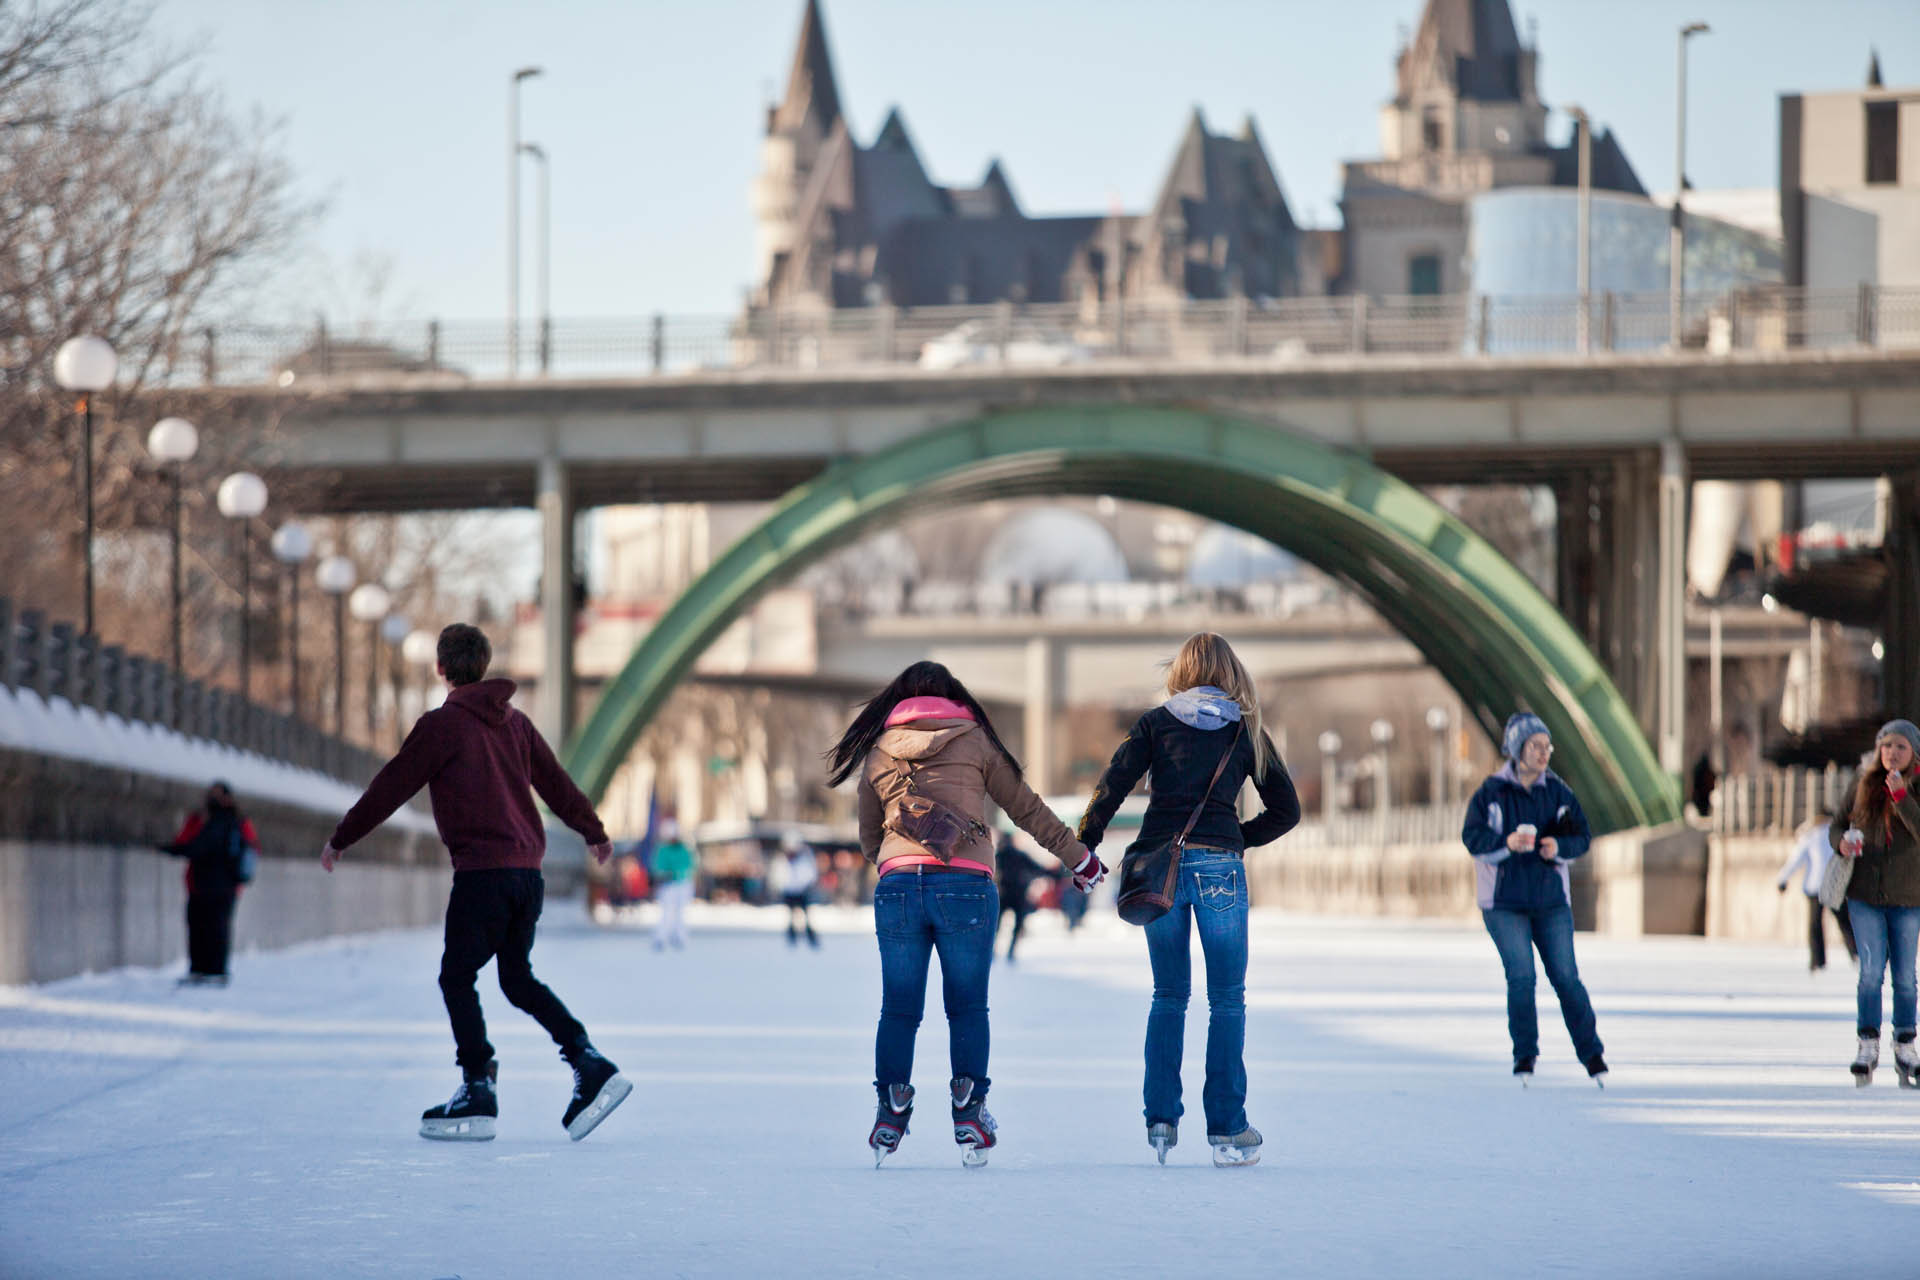 Friends skating on the Rideau Canal